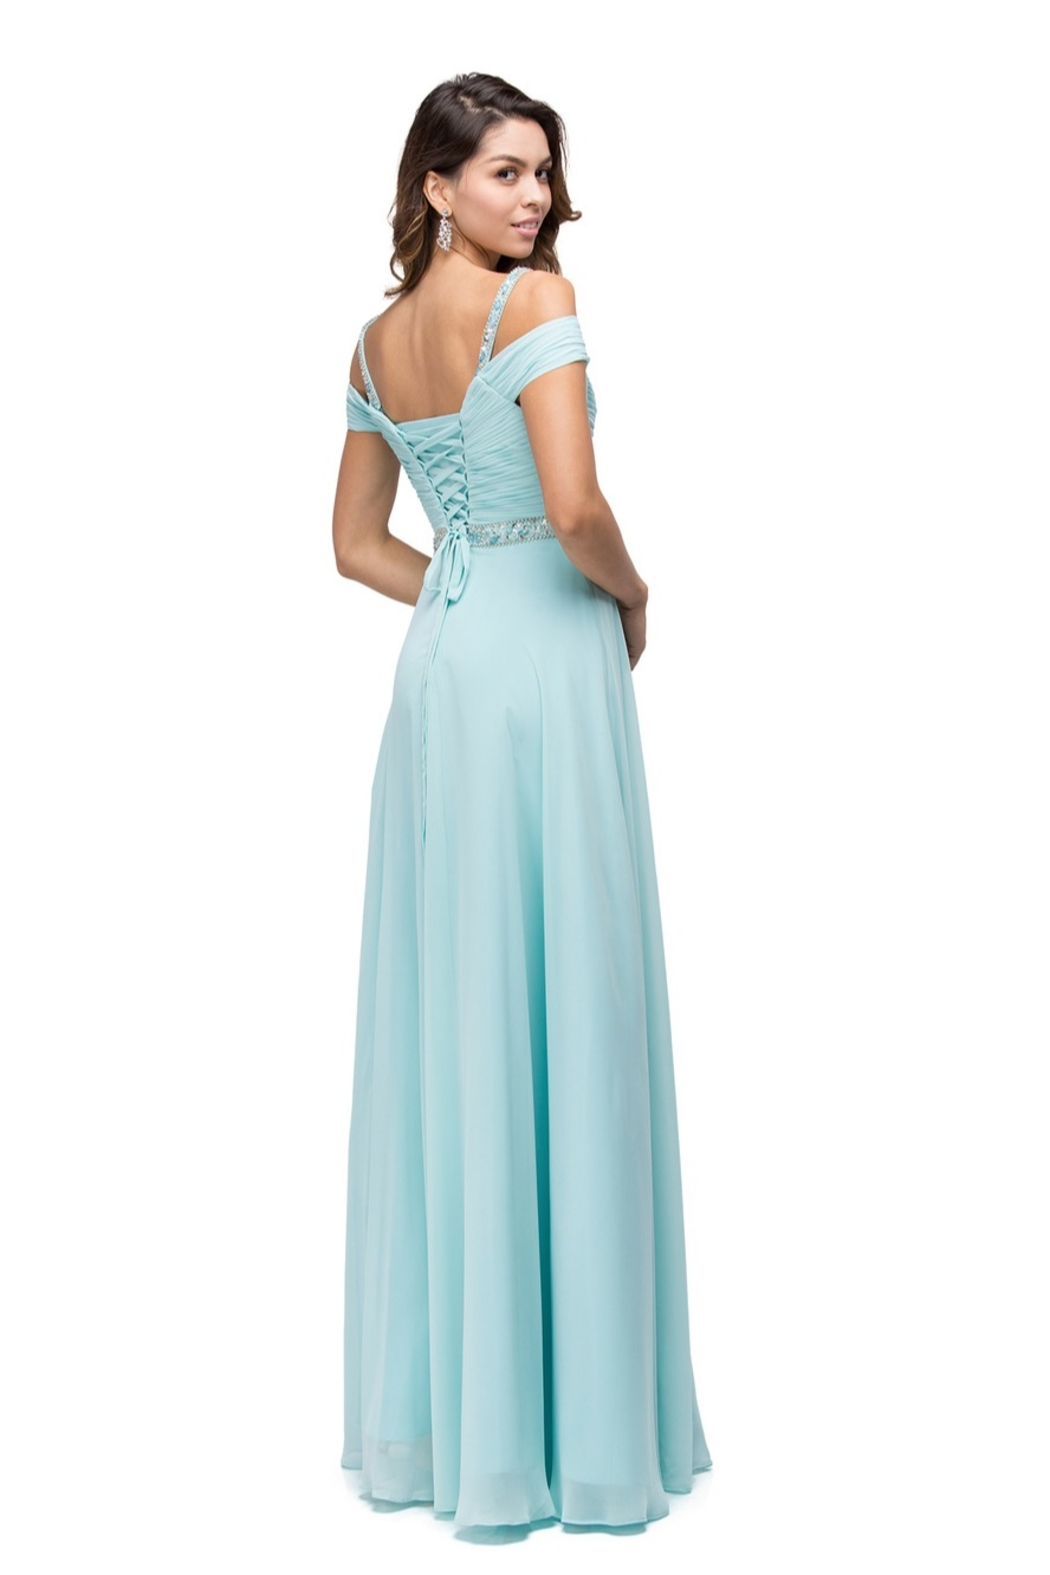 DANCING QUEEN Ruched Bejeweled Cold Shoulder Chiffon Dress - Front Full Image